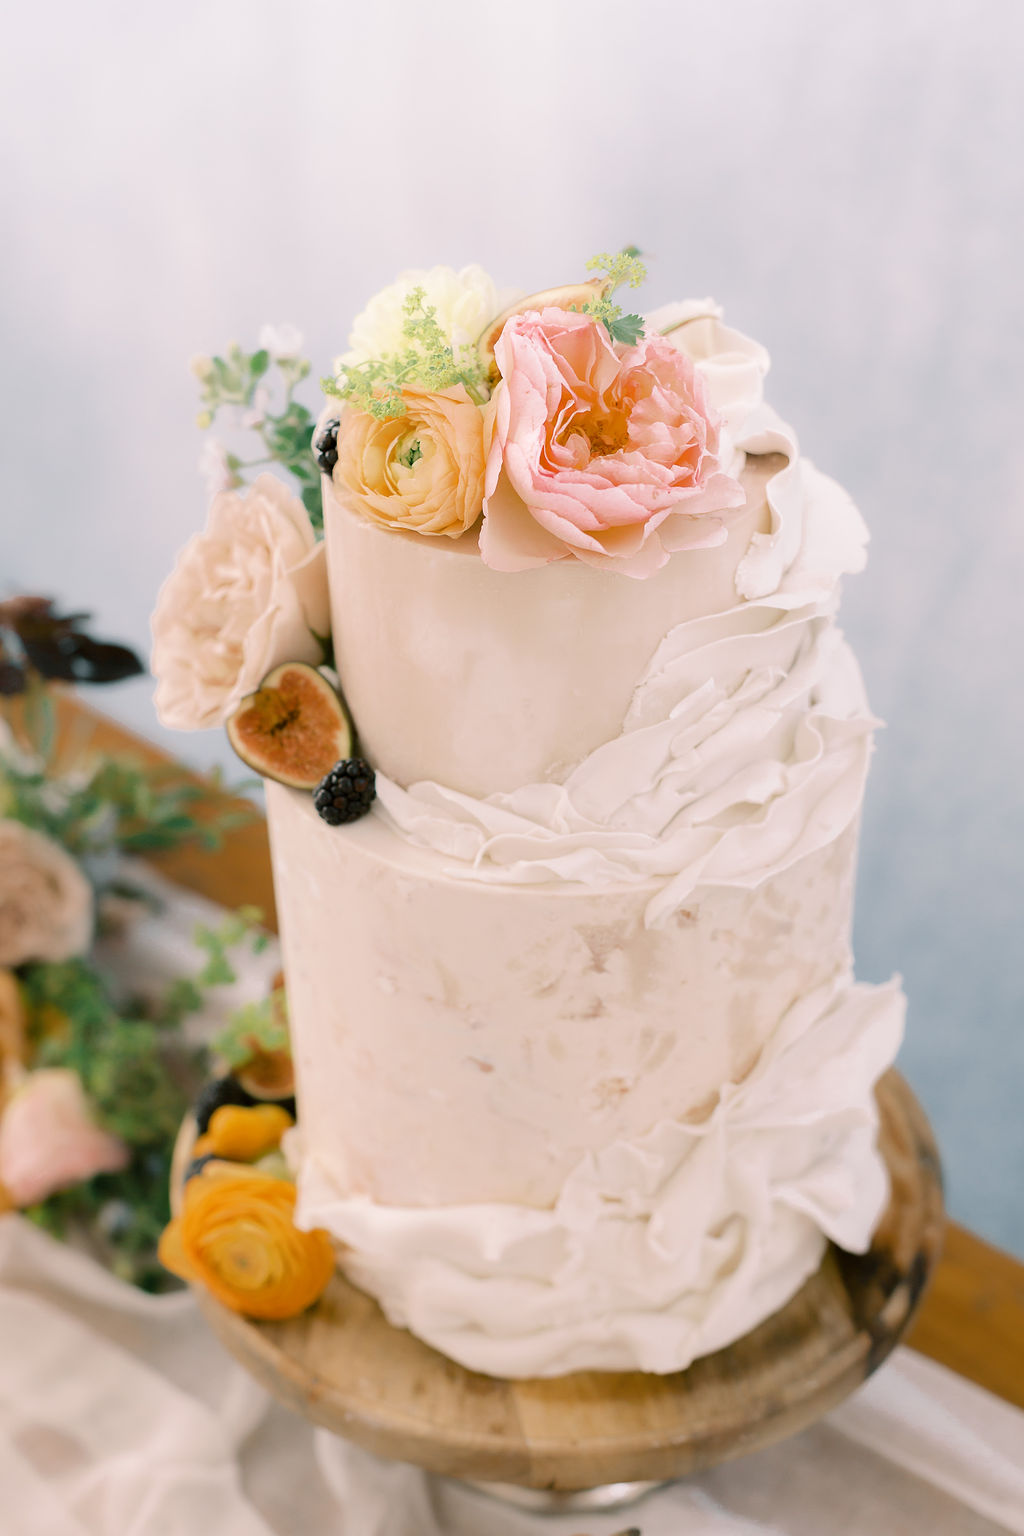 Floral wedding cake: Ethereal Wedding Inspiration at The White Sparrow